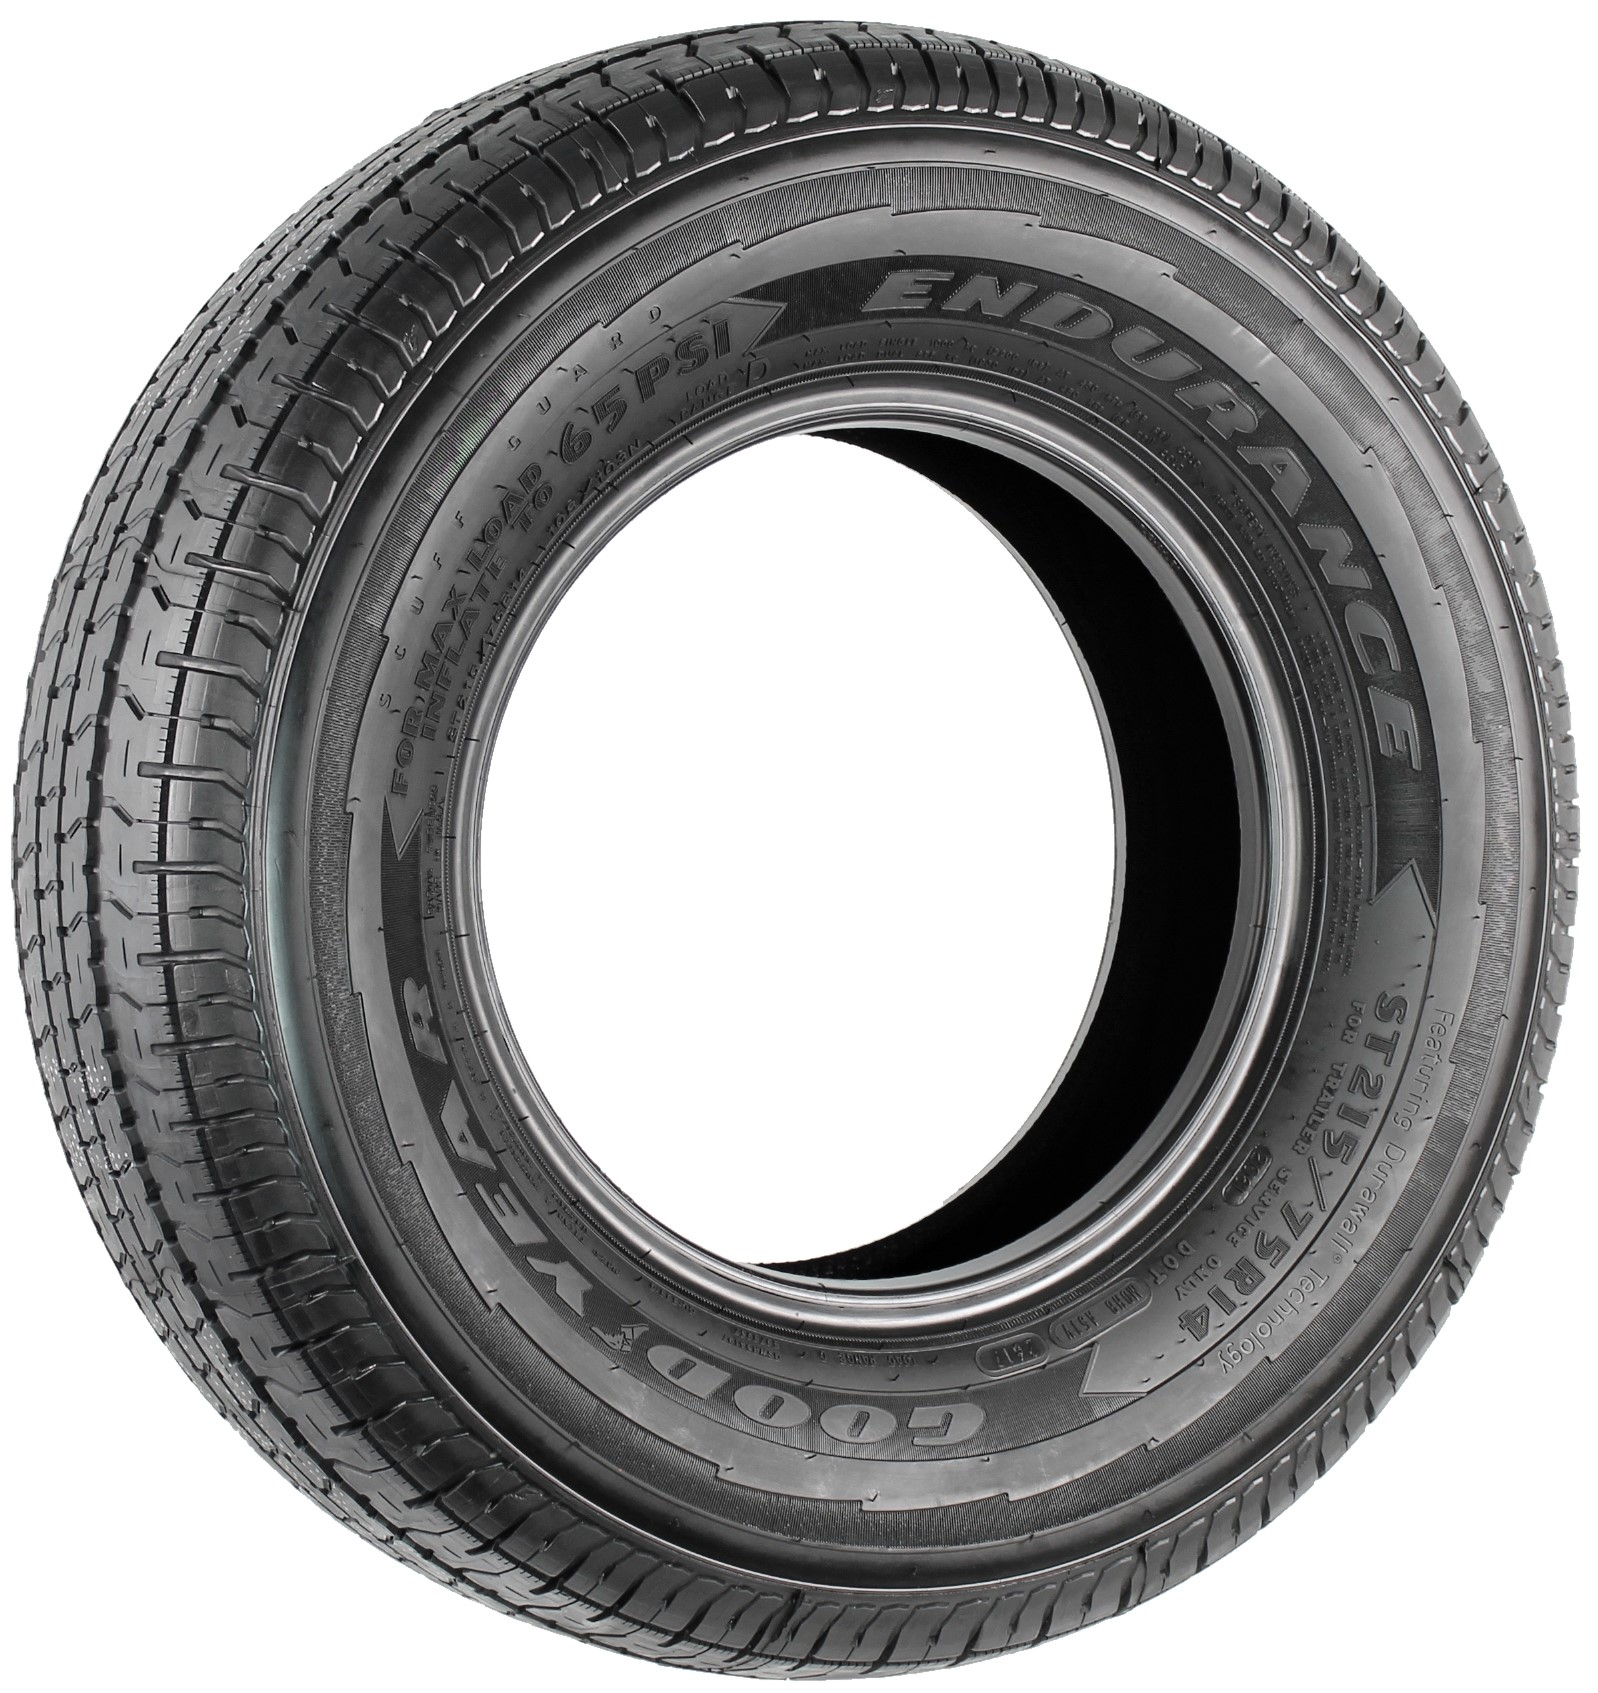 Goodyear Endurance ST215/75R14 LRD Radial Trailer Tire Image